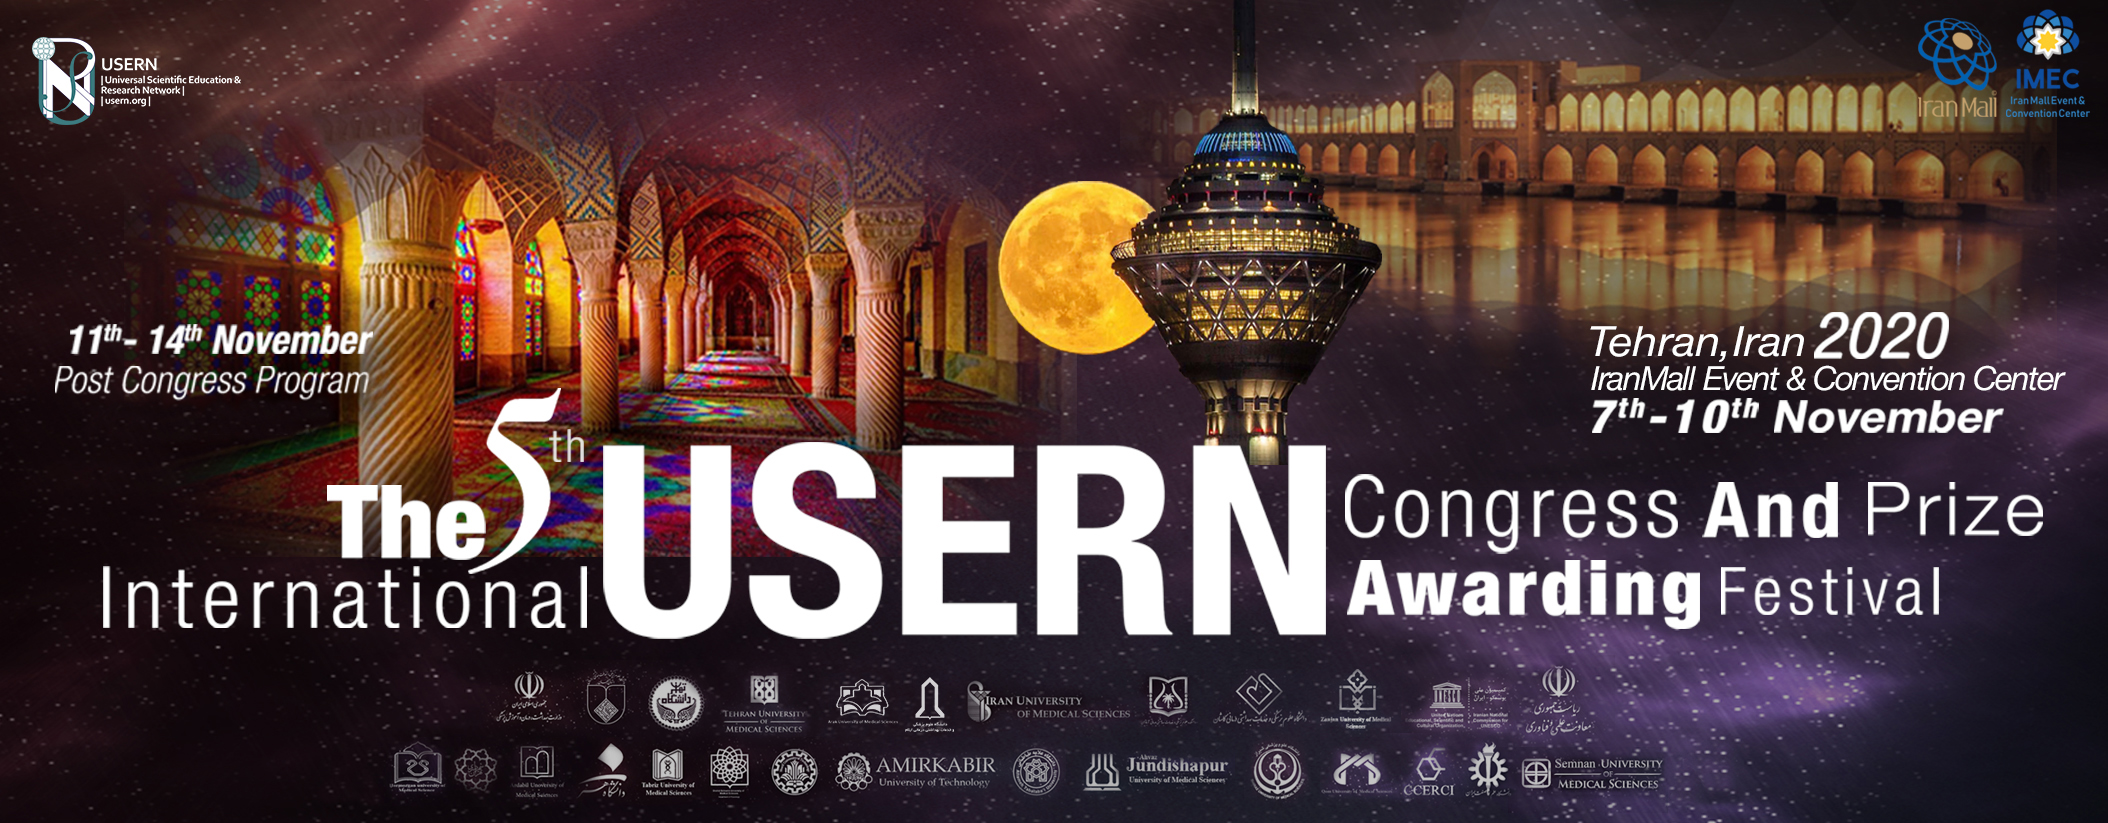 USERN 2020: The Largest Scientific Gathering of World's Top Scientists at Iran Mall Exhibition Center